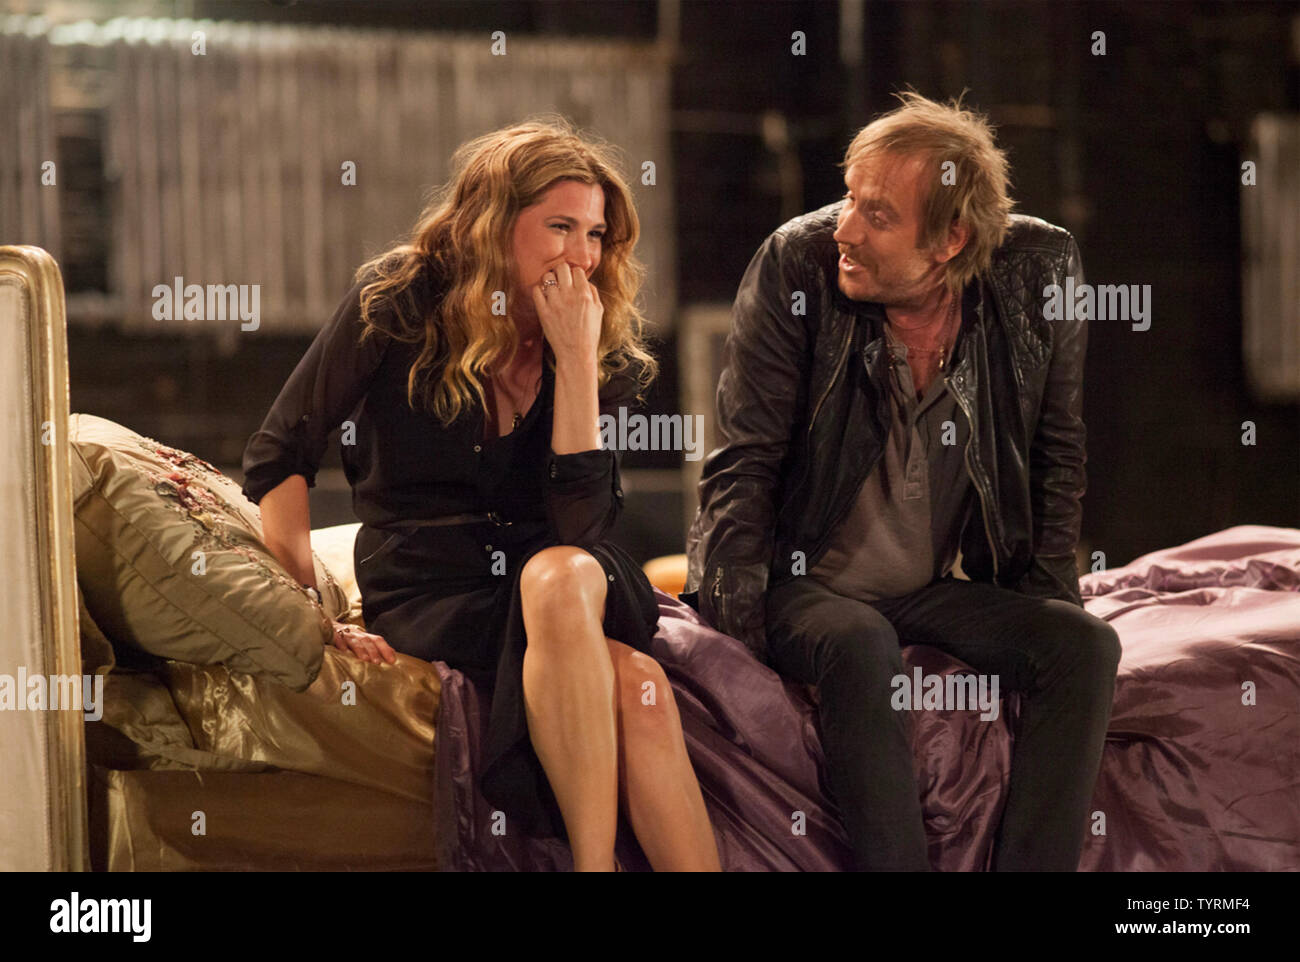 SHE'S FUNNY THAT WAY 2014 Lionsgate Premiere film with Kathryn Hahn and Rhys Ifans - Stock Image